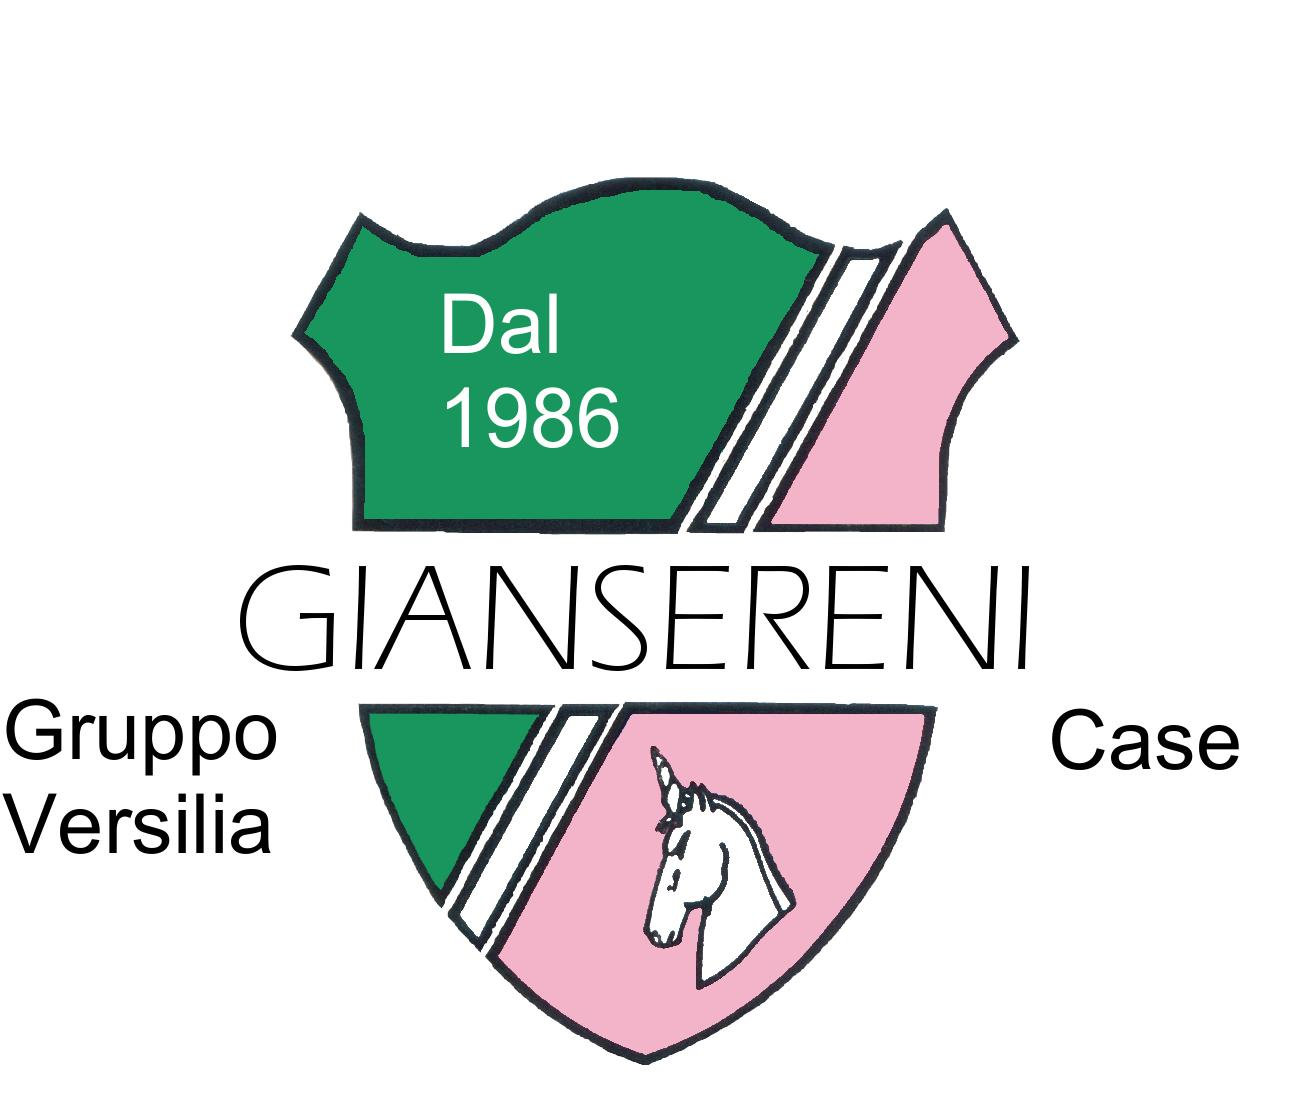 Giansereni case